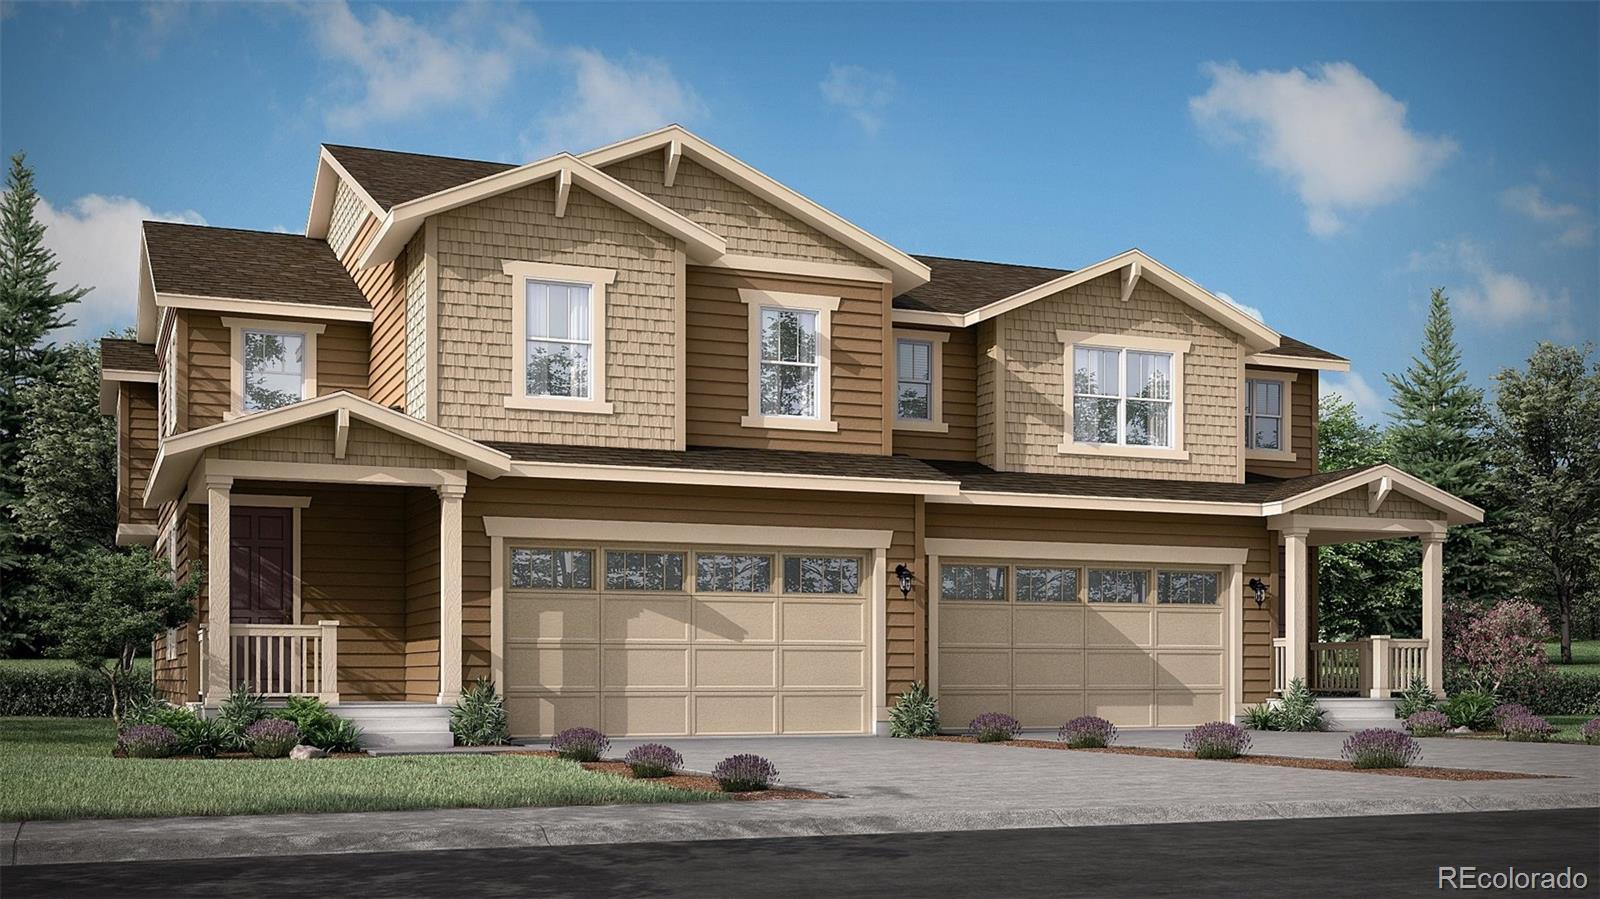 Available November 2021!  Brand new paired home in Buffalo Highlands.  Gorgeous Meridian 2 story backs features 3 beds, 2.5 baths, great room, open kitchen, dining room, loft, upstairs laundry, 2 car garage, full unfinished basement for future expansion. Beautiful upgrades and finishes. This is the largest paired home plan with an amazing kitchen w/walk-in pantry plus walk-in closets in all bedrooms. Buffalo Highlands is a new Lennar community providing the best of Colorado living with all the latest technology.  Lennar provides the latest in energy efficiency & state of the art technology with several fabulous floorplans to choose from.  Energy efficiency, and technology/connectivity seamlessly blended with luxury to make your new house a home.  What some builders consider high-end upgrades, Lennar makes a standard inclusion. You will not be disappointed. This community offers single family and paired homes for every lifestyle.  Close to dining, shopping, entertainment and other amenities. Easy commute to DIA, E-470, Downtown Denver, Golden, Boulder & beyond.  Don't wait – this is a typically sold out plan and won't last long.